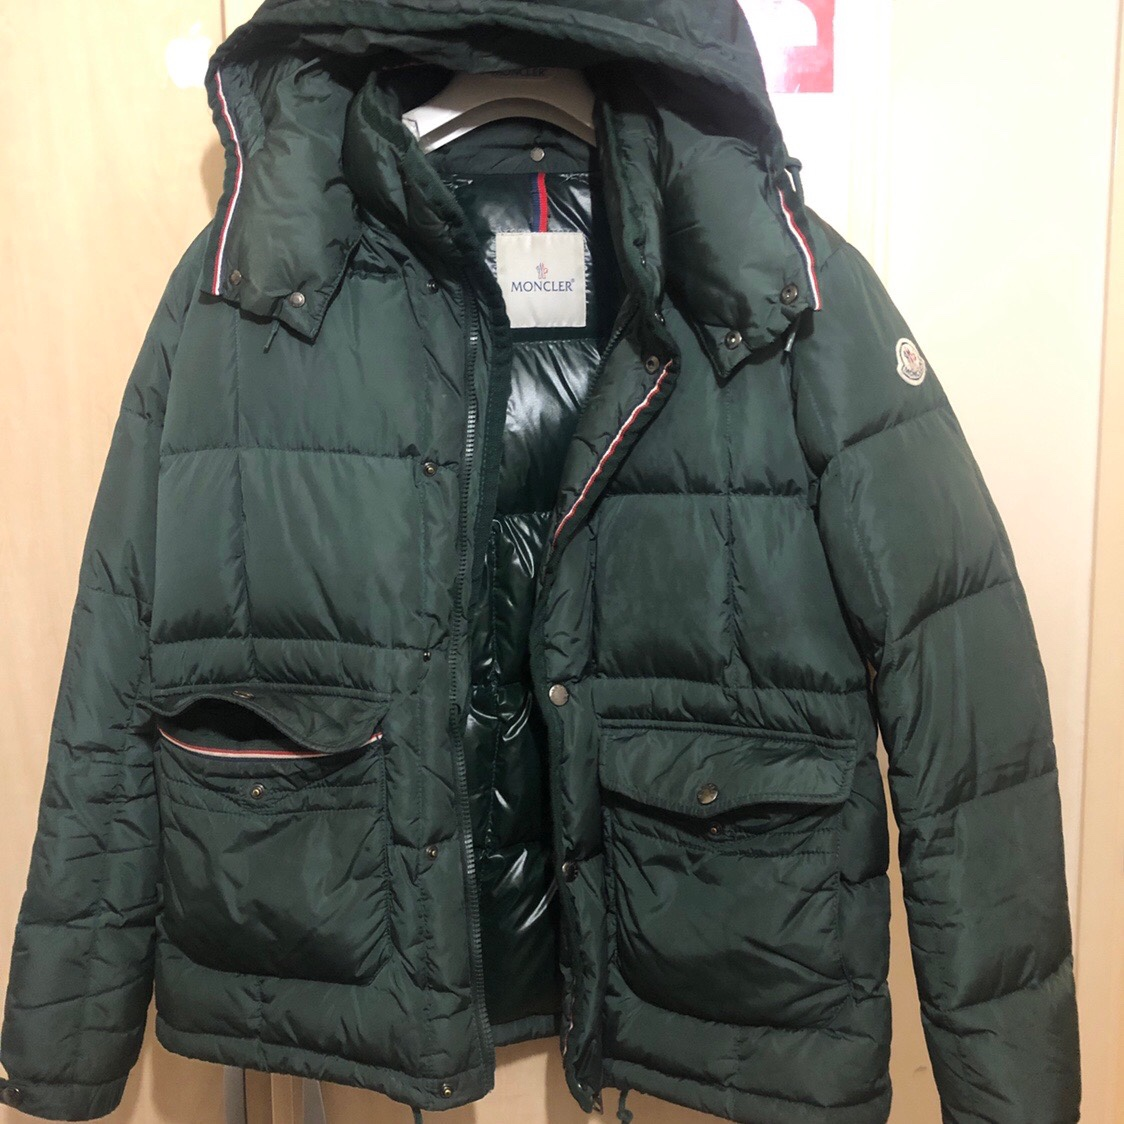 36bab4a1c Authentic Moncler Vernet Puffer Jacket in Emerald... - Depop